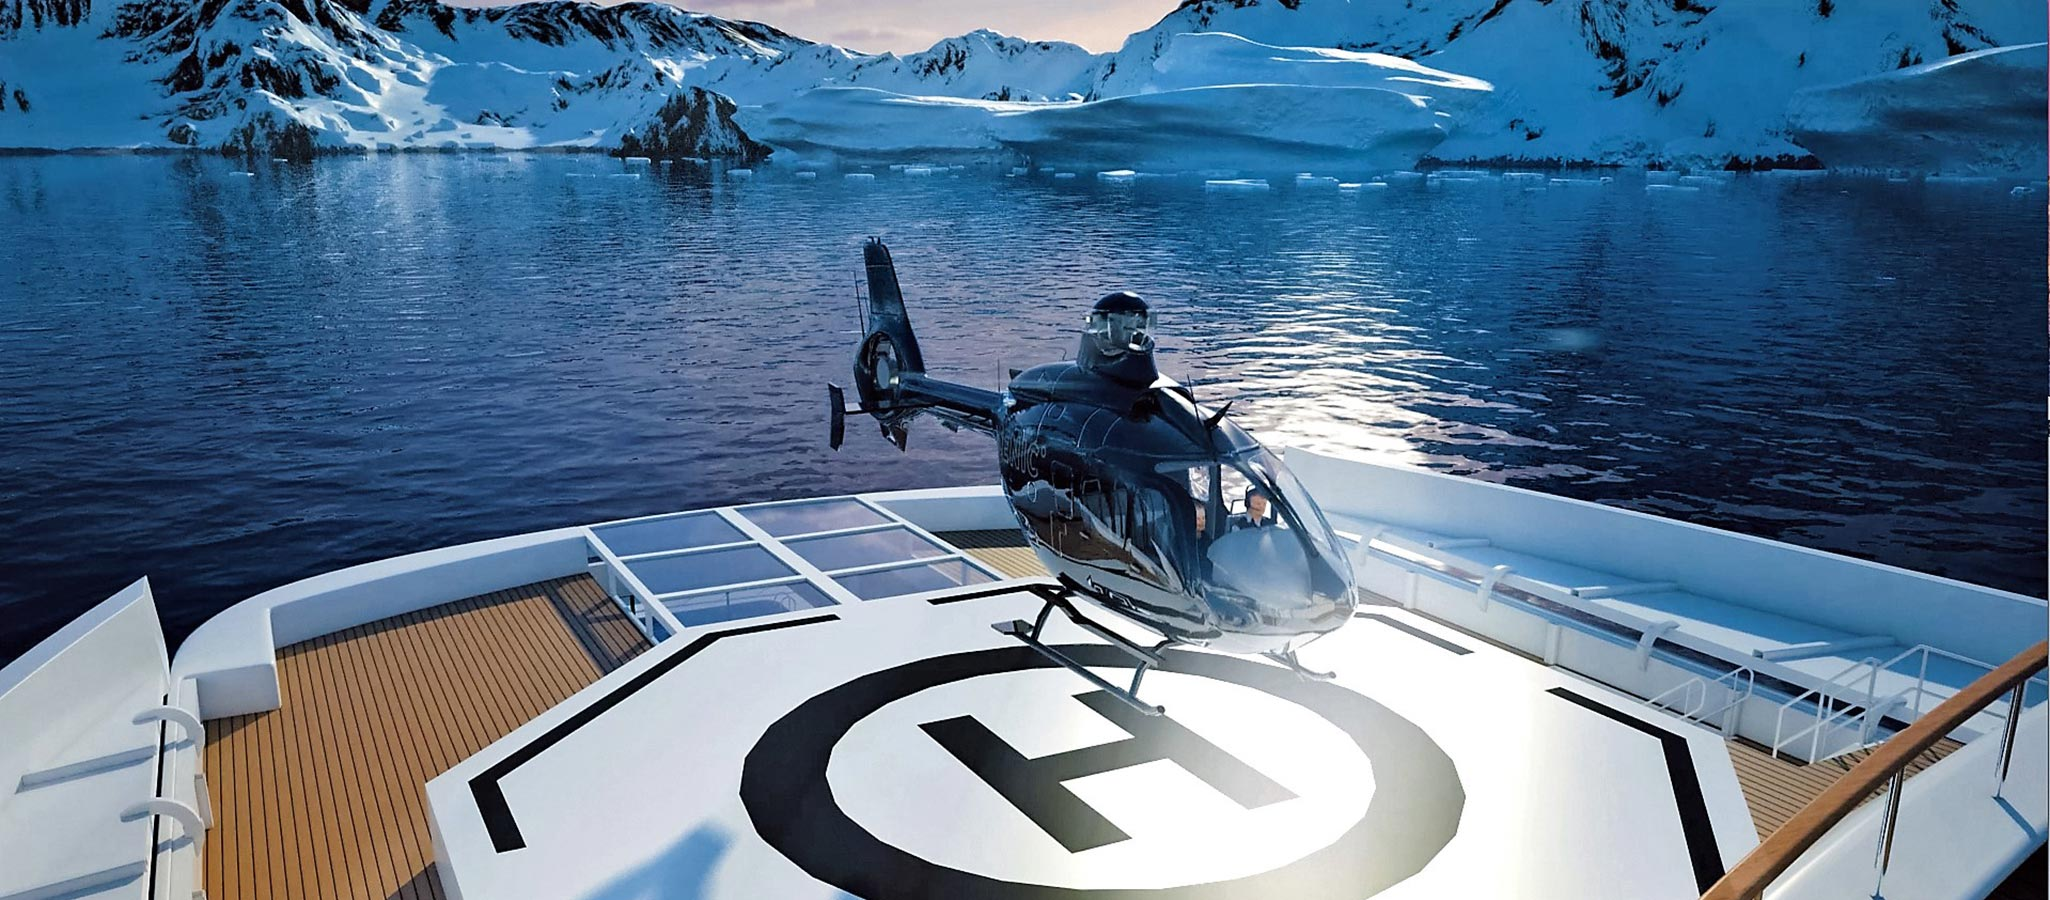 VIP guests can be flown in with on-board helicopters.